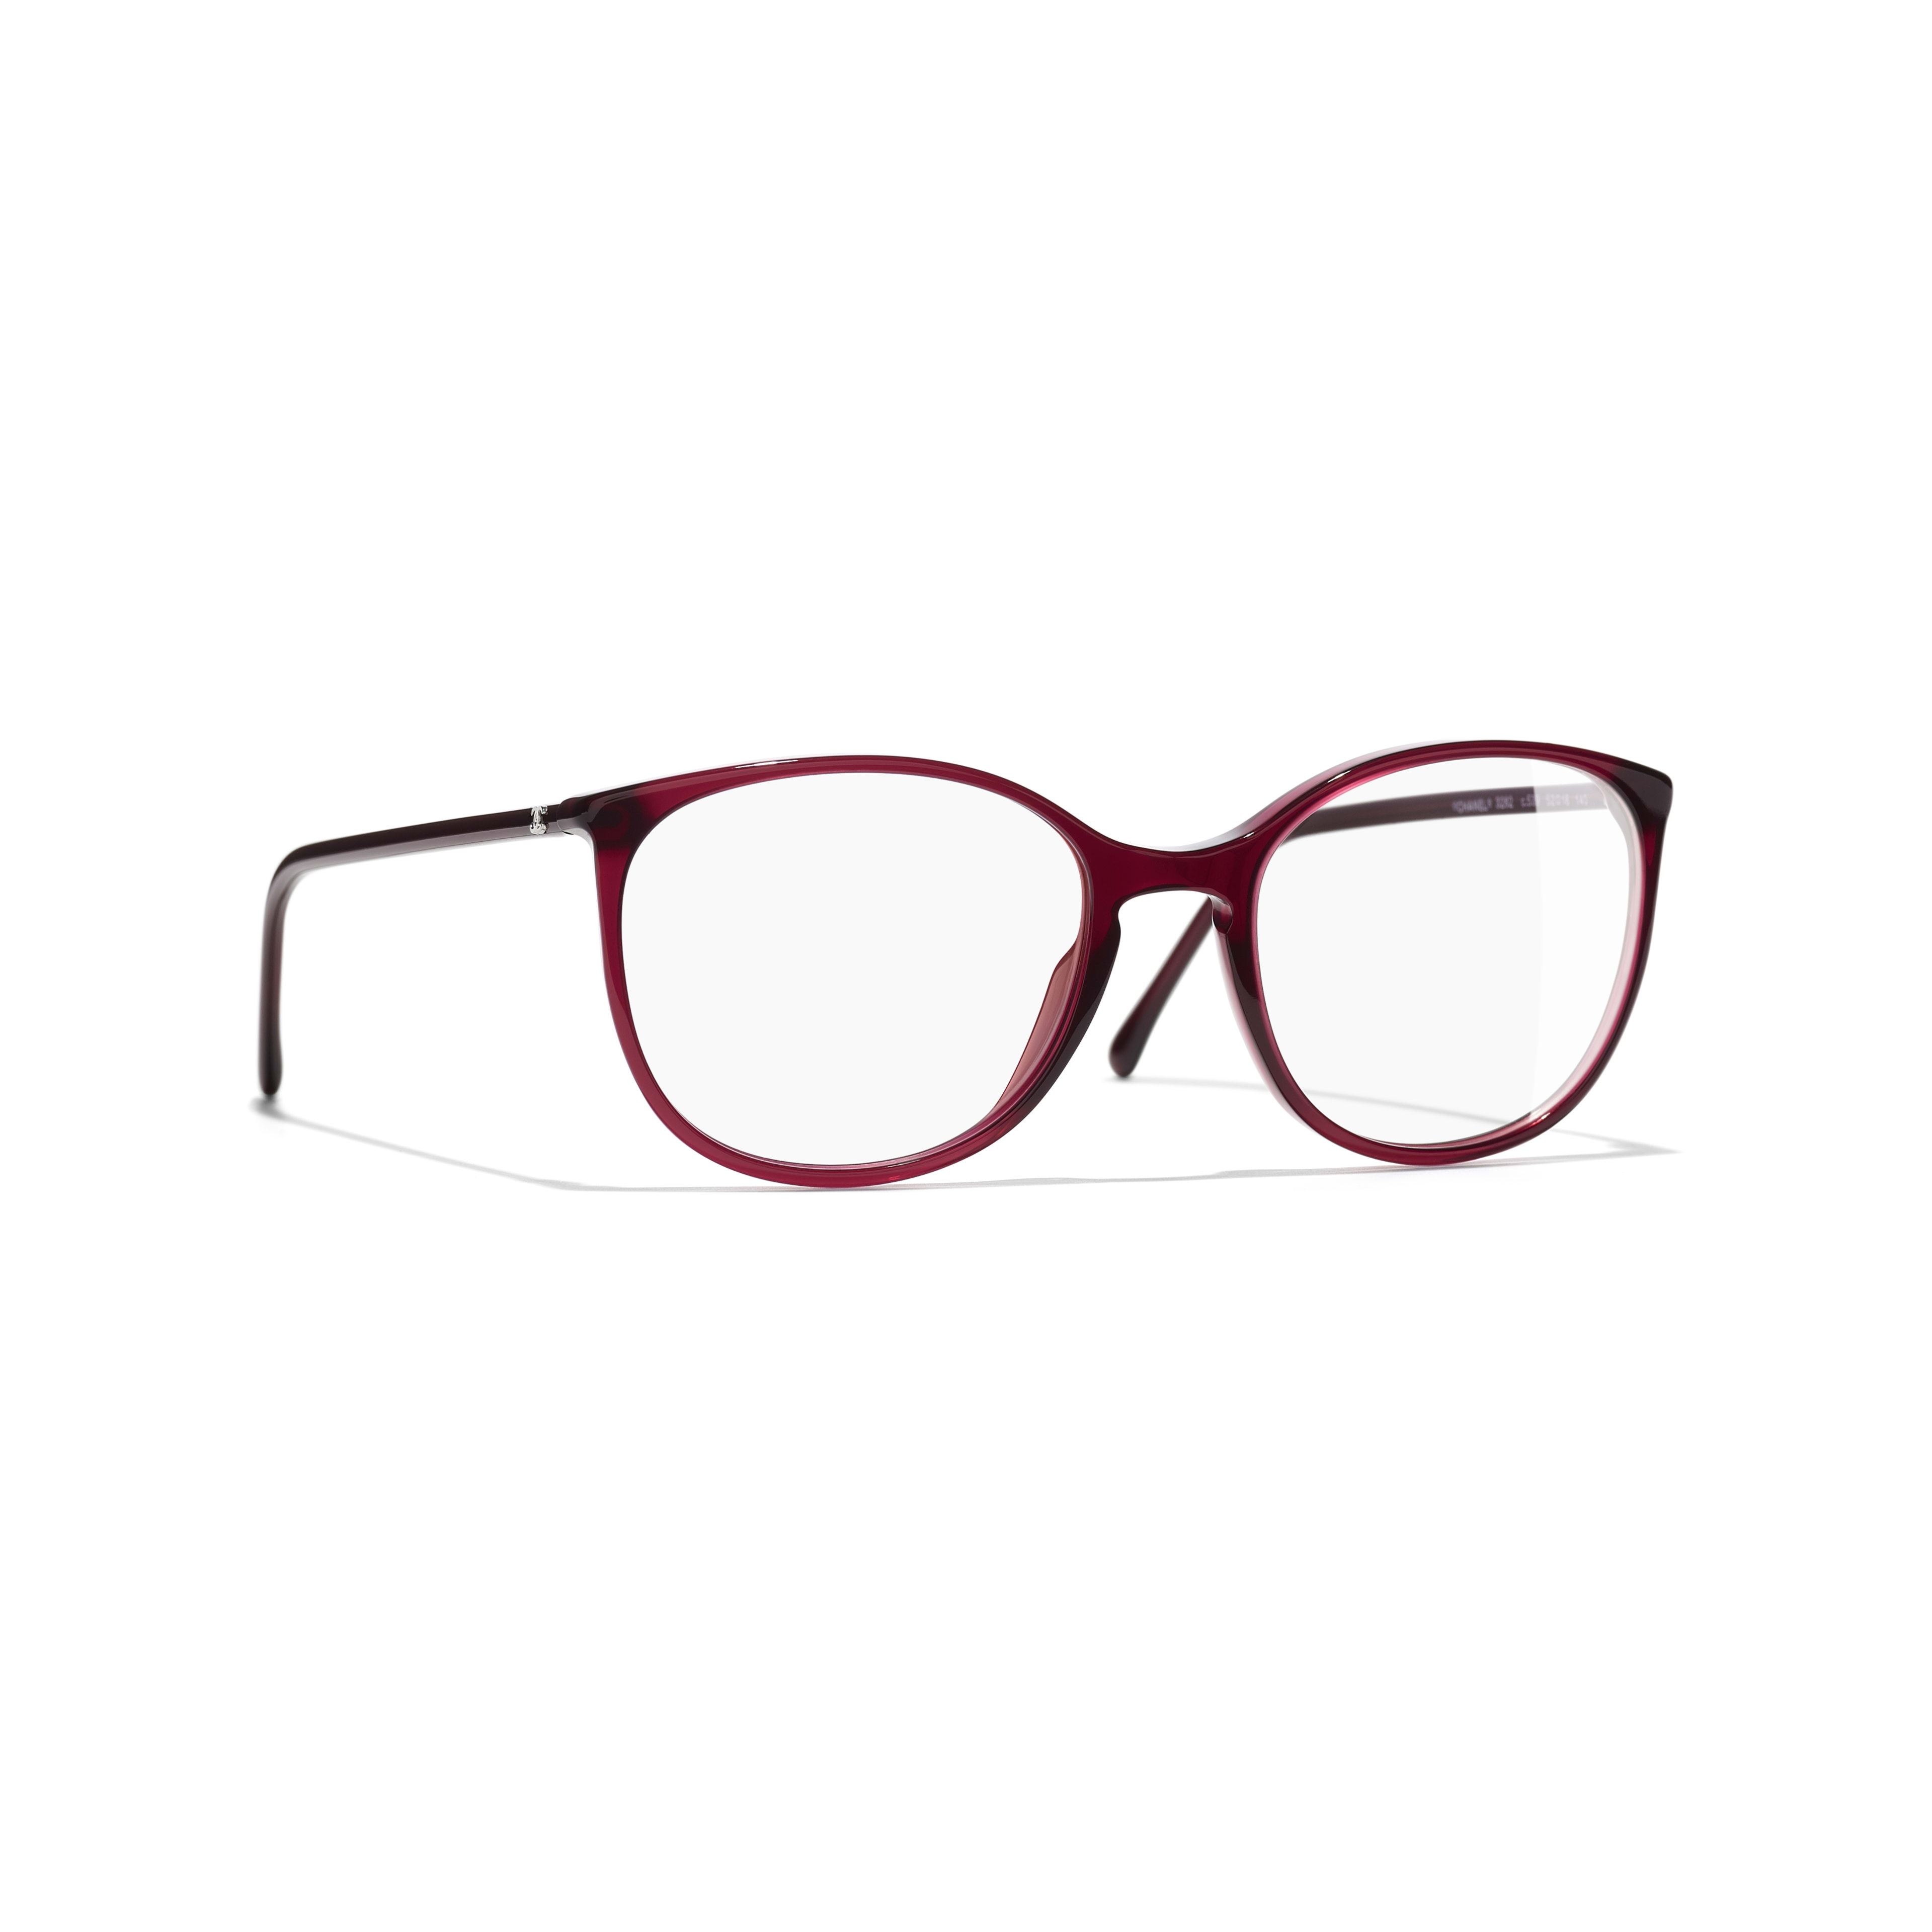 Round Eyeglasses - Red - Acetate - Default view - see full sized version